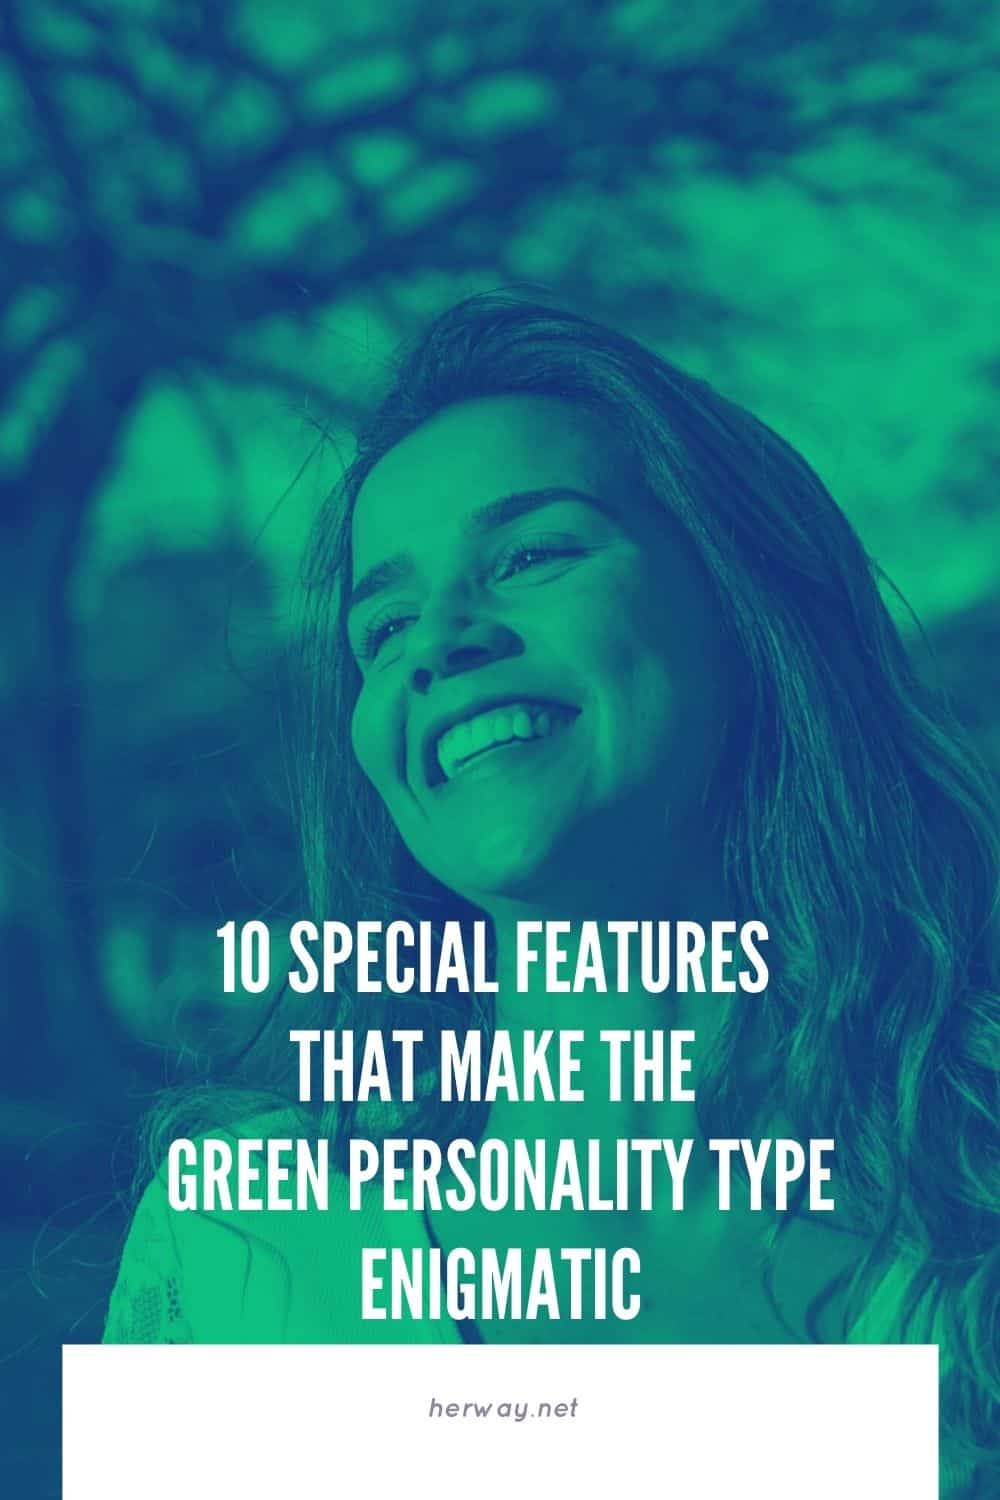 10 Special Features That Make The Green Personality Type Enigmatic